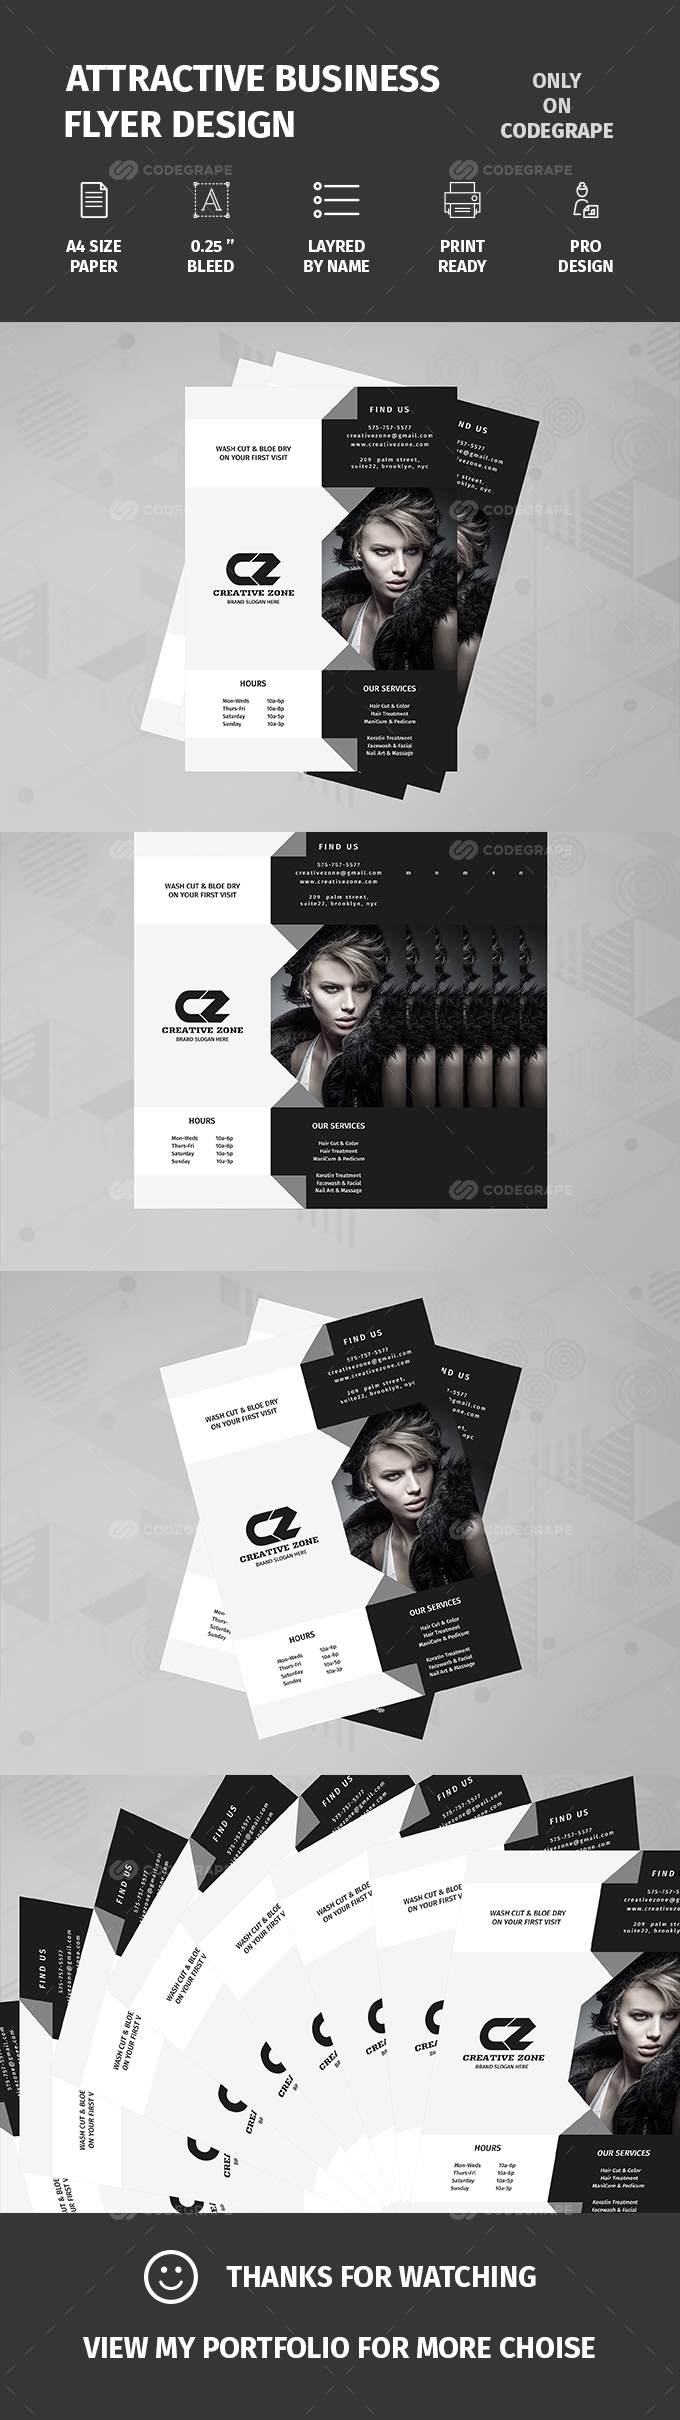 Attractive Business Flyer Design